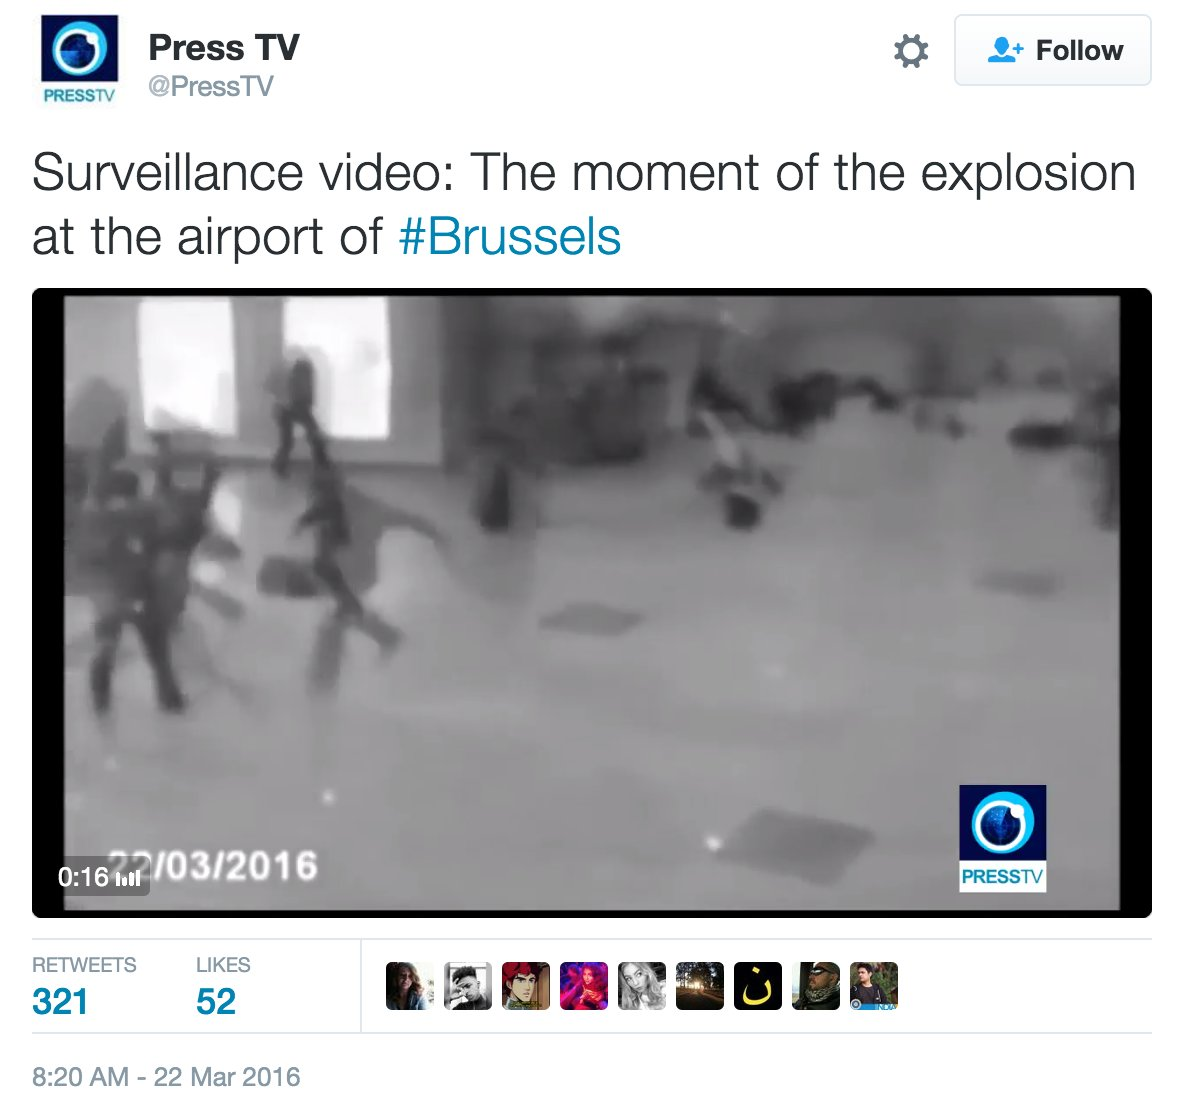 Three year old CCTV footage circulating claiming to be #Brussels. Be responsible, and verify before. https://t.co/aLY0Vik5ZH